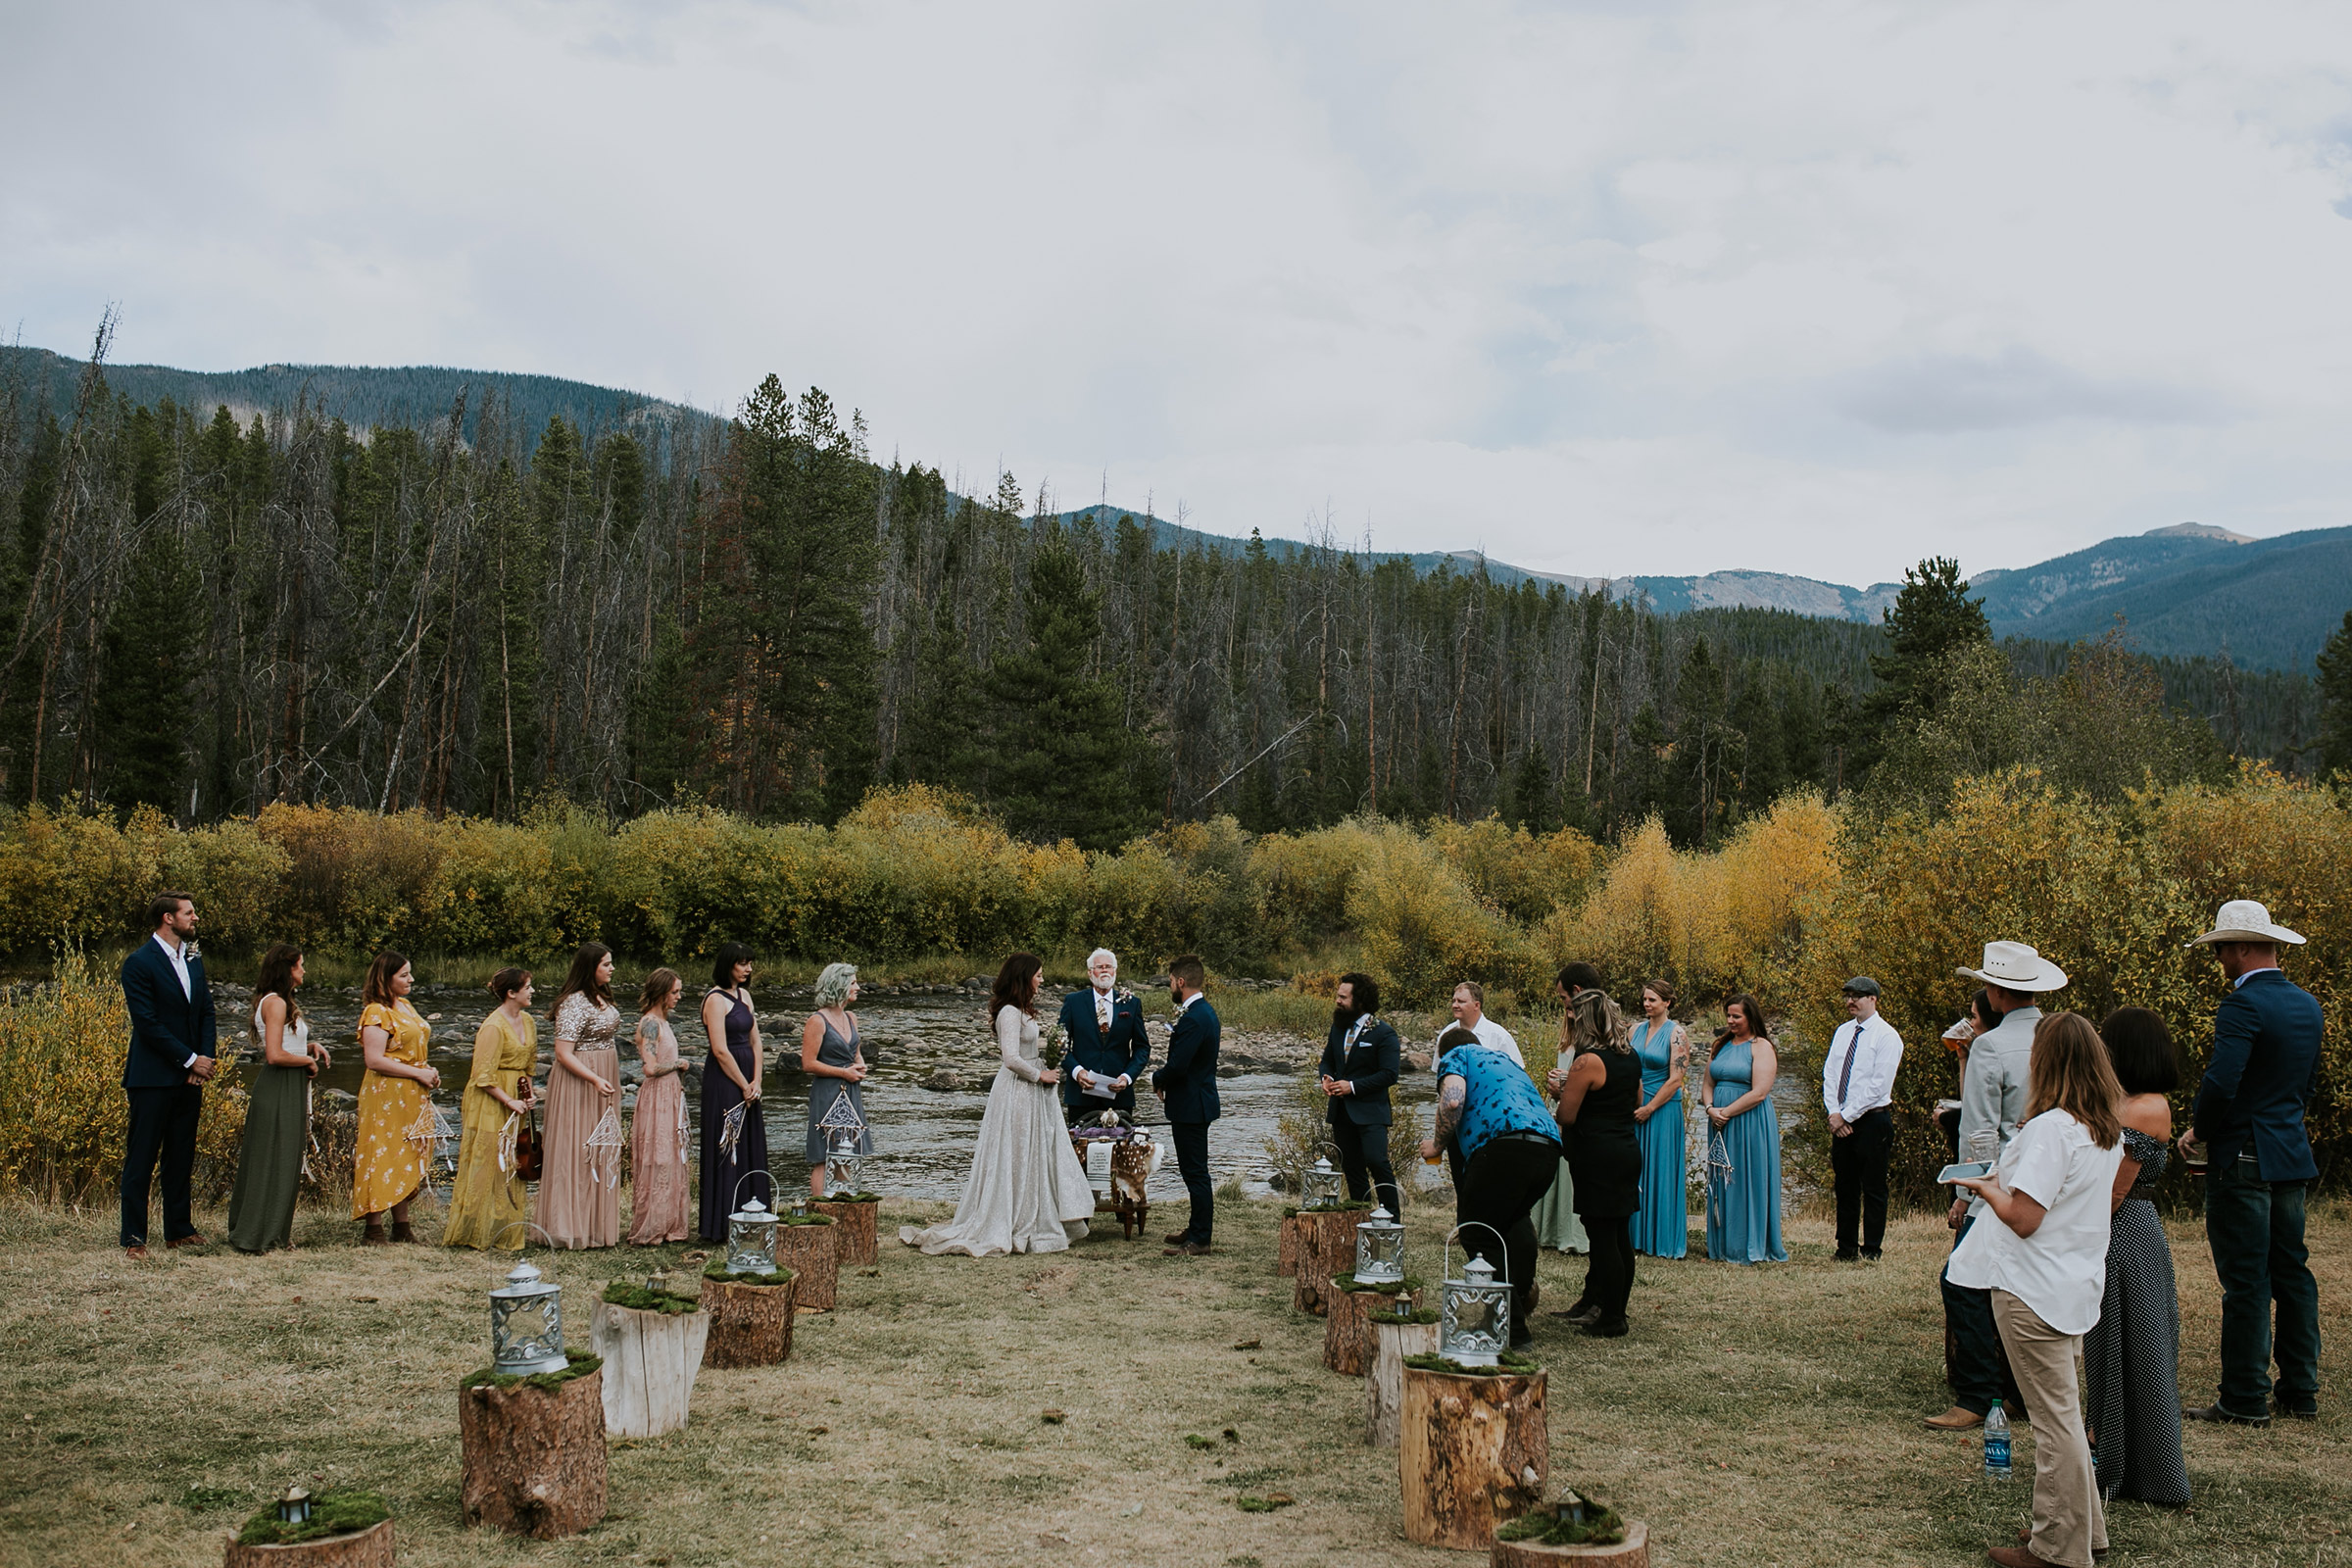 wedding-ceremony-double-a-barn-grand-lake-colorado-raelyn-ramey-photography-419.jpg